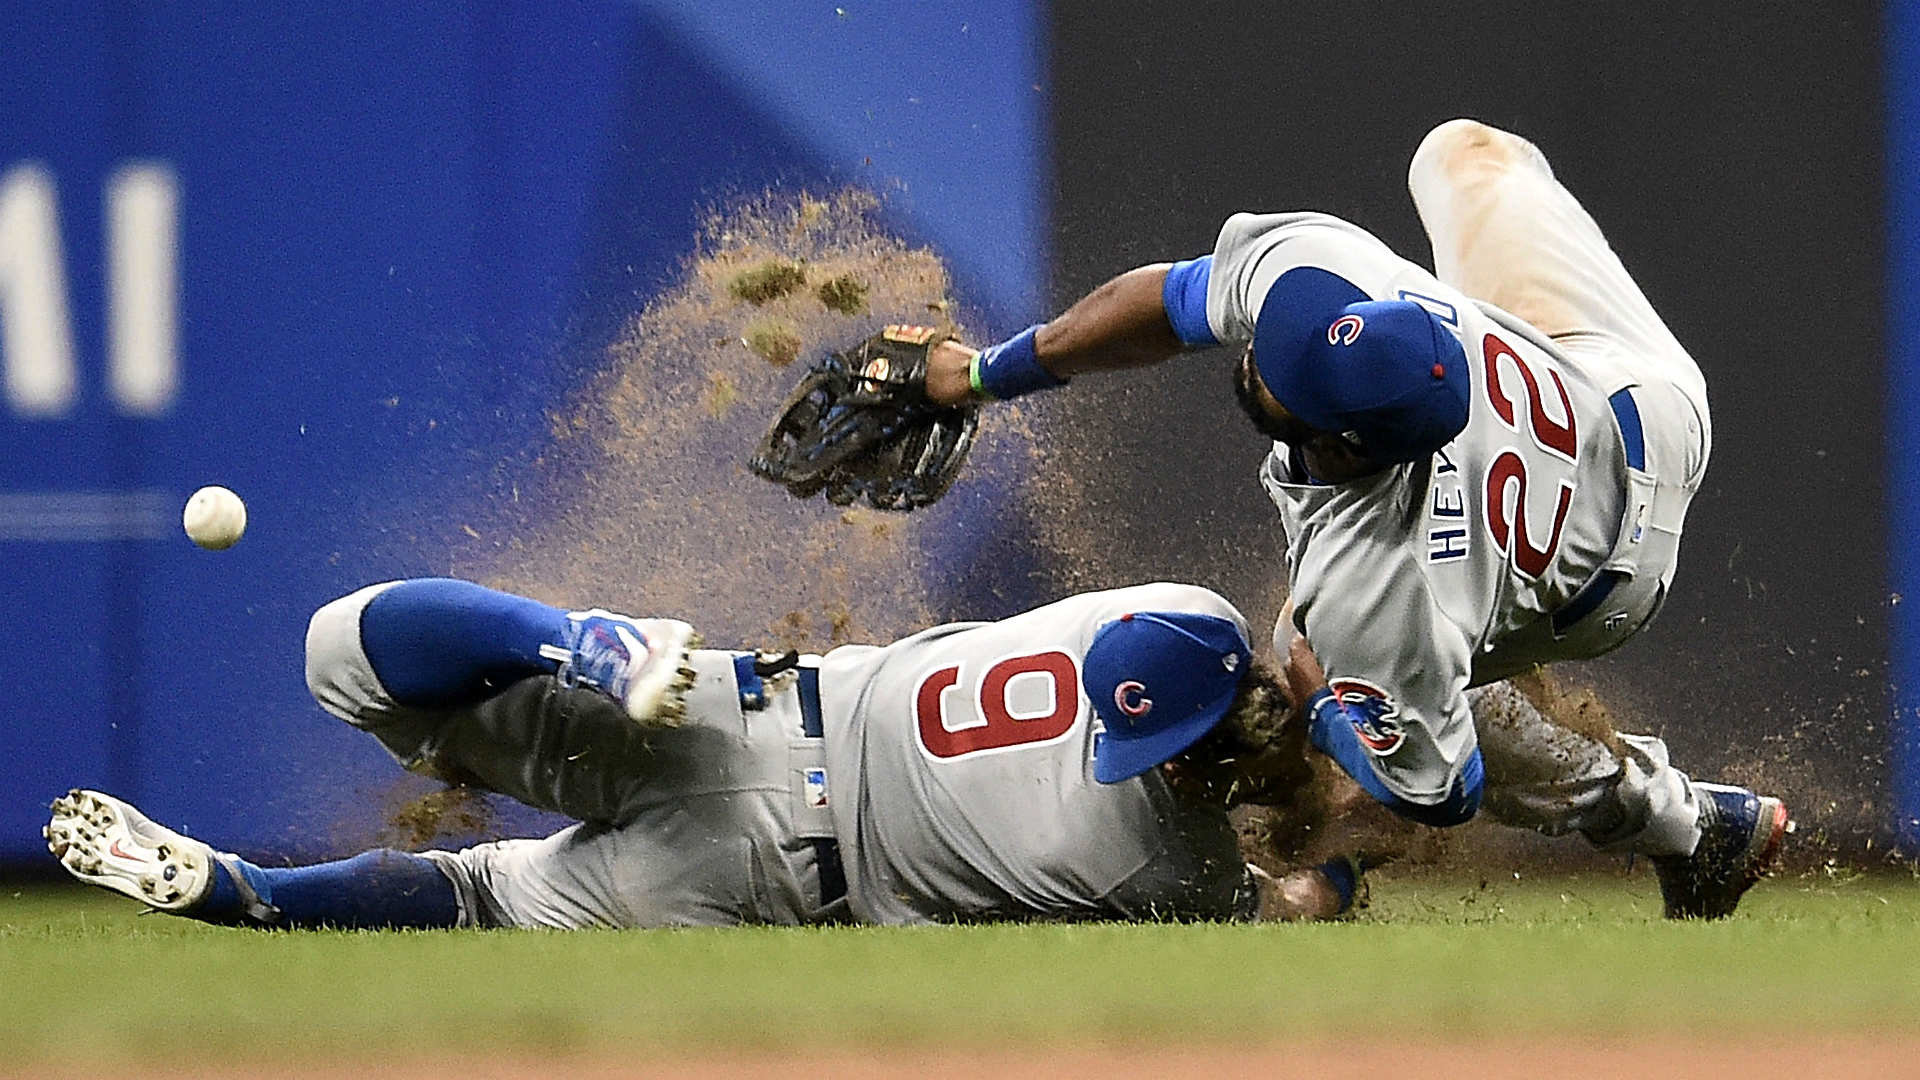 1920x1080 Javier Baez shaken up in scary collision with Jason Heyward | MLB |  Sporting News